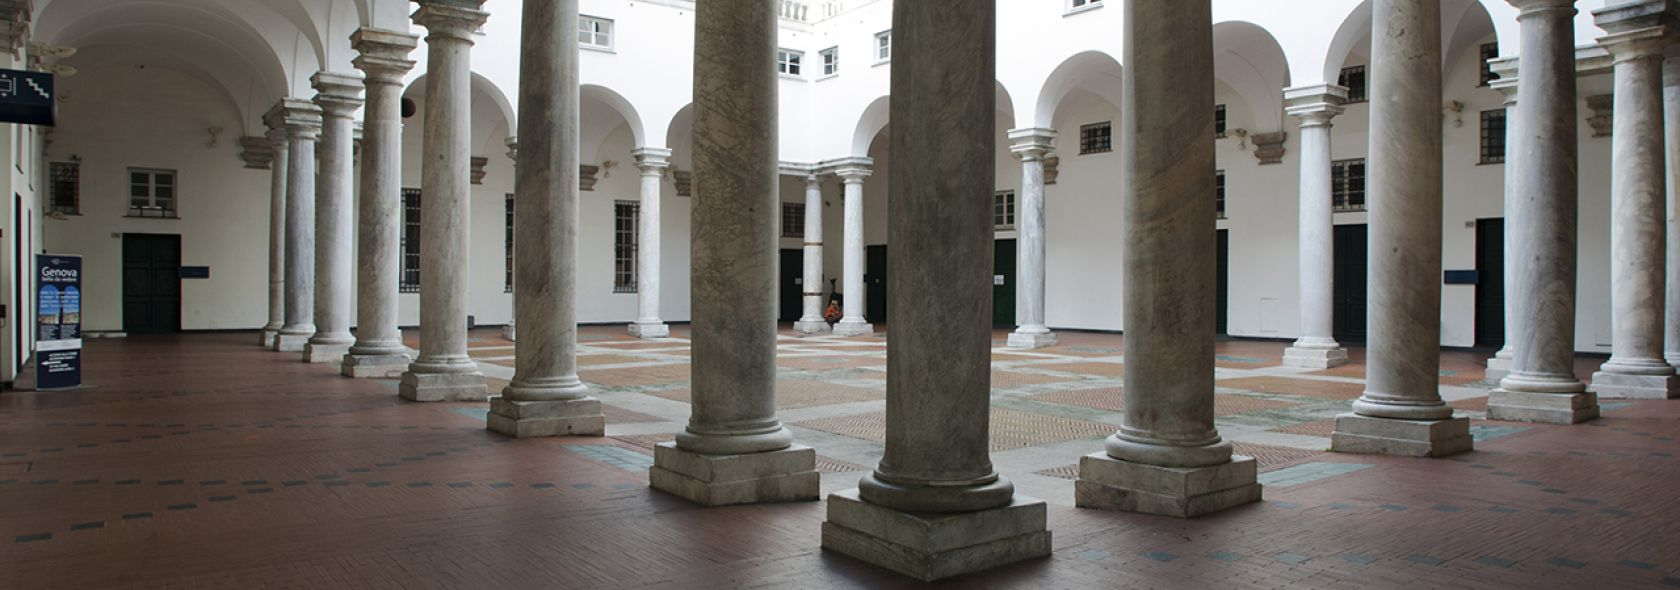 Palazzo Ducale - Major Courtyard - © G. Cavalieri - IT Office